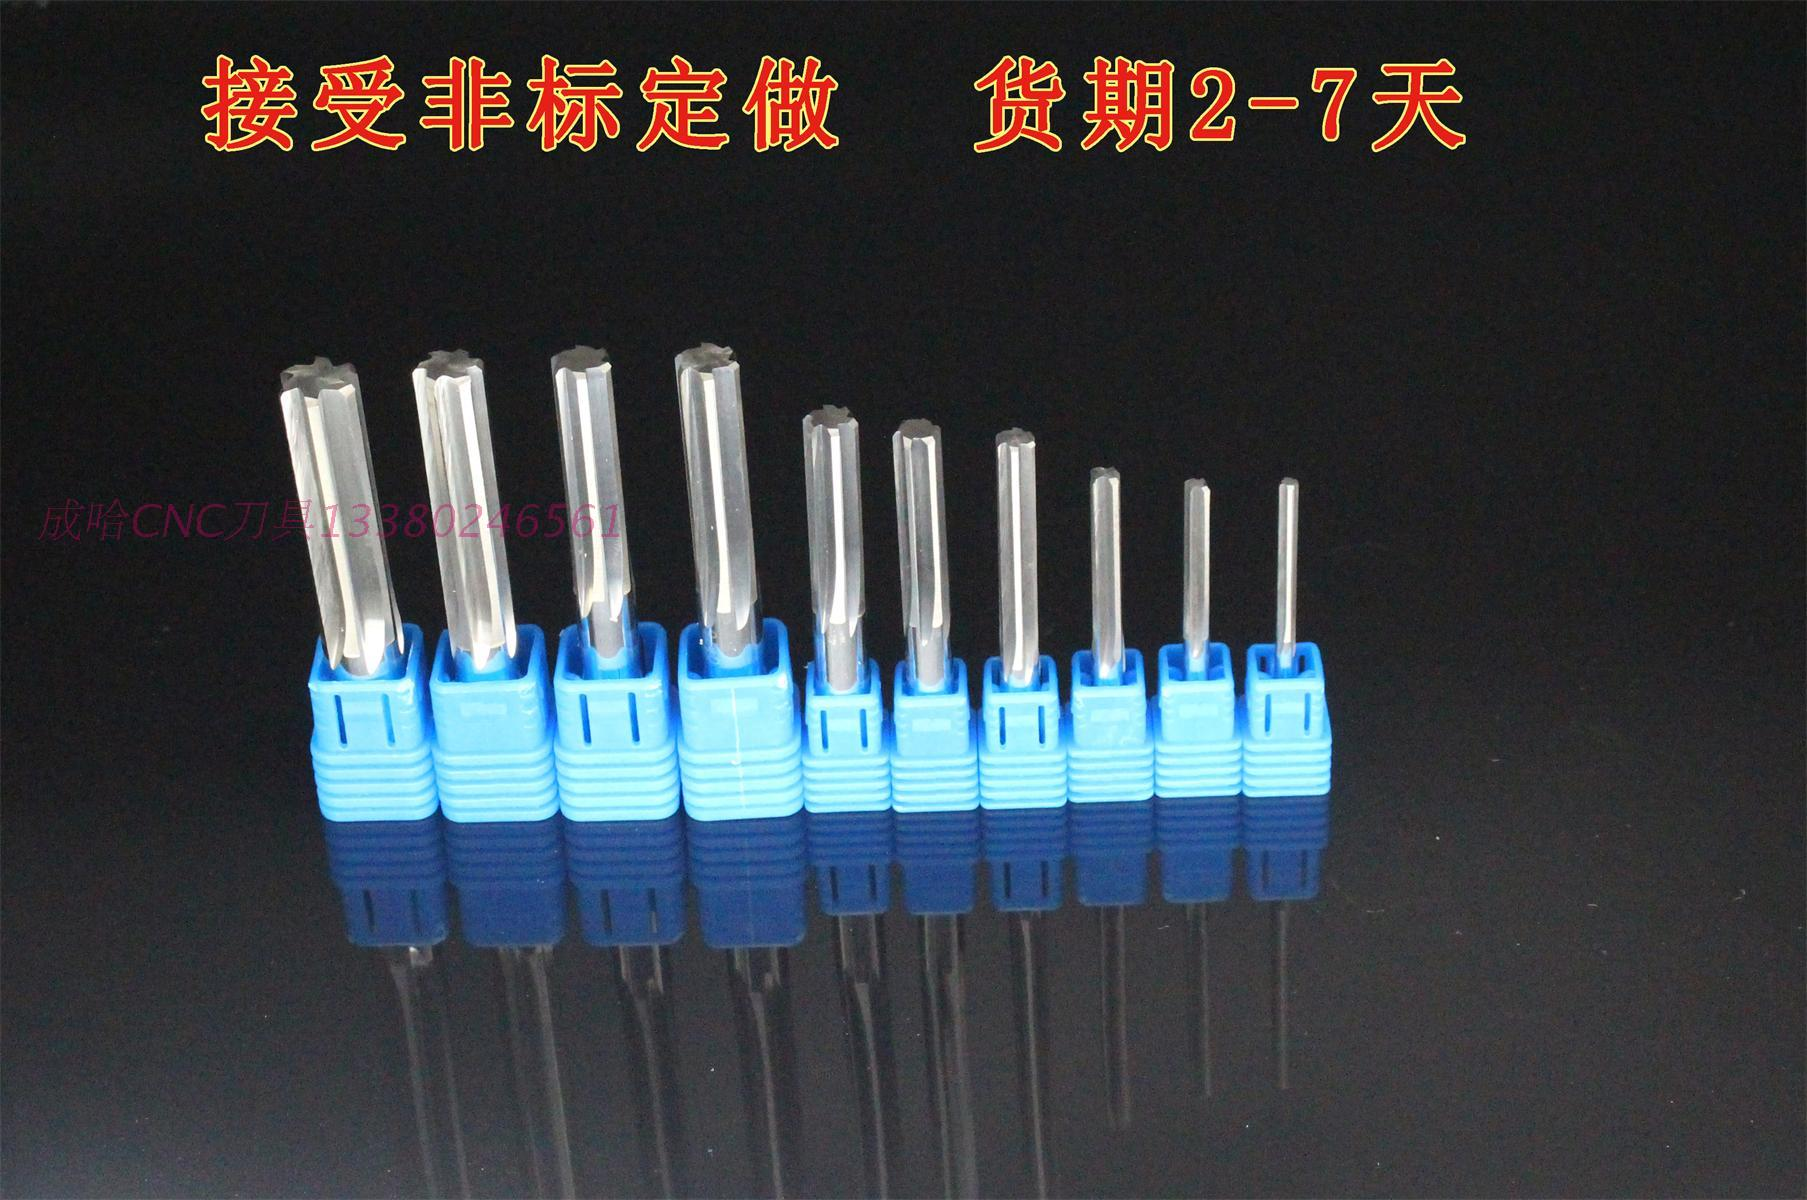 GZN tungsten steel alloy reamer machine reamer reamer reaming cutter 2.012.022.032.04--2.09